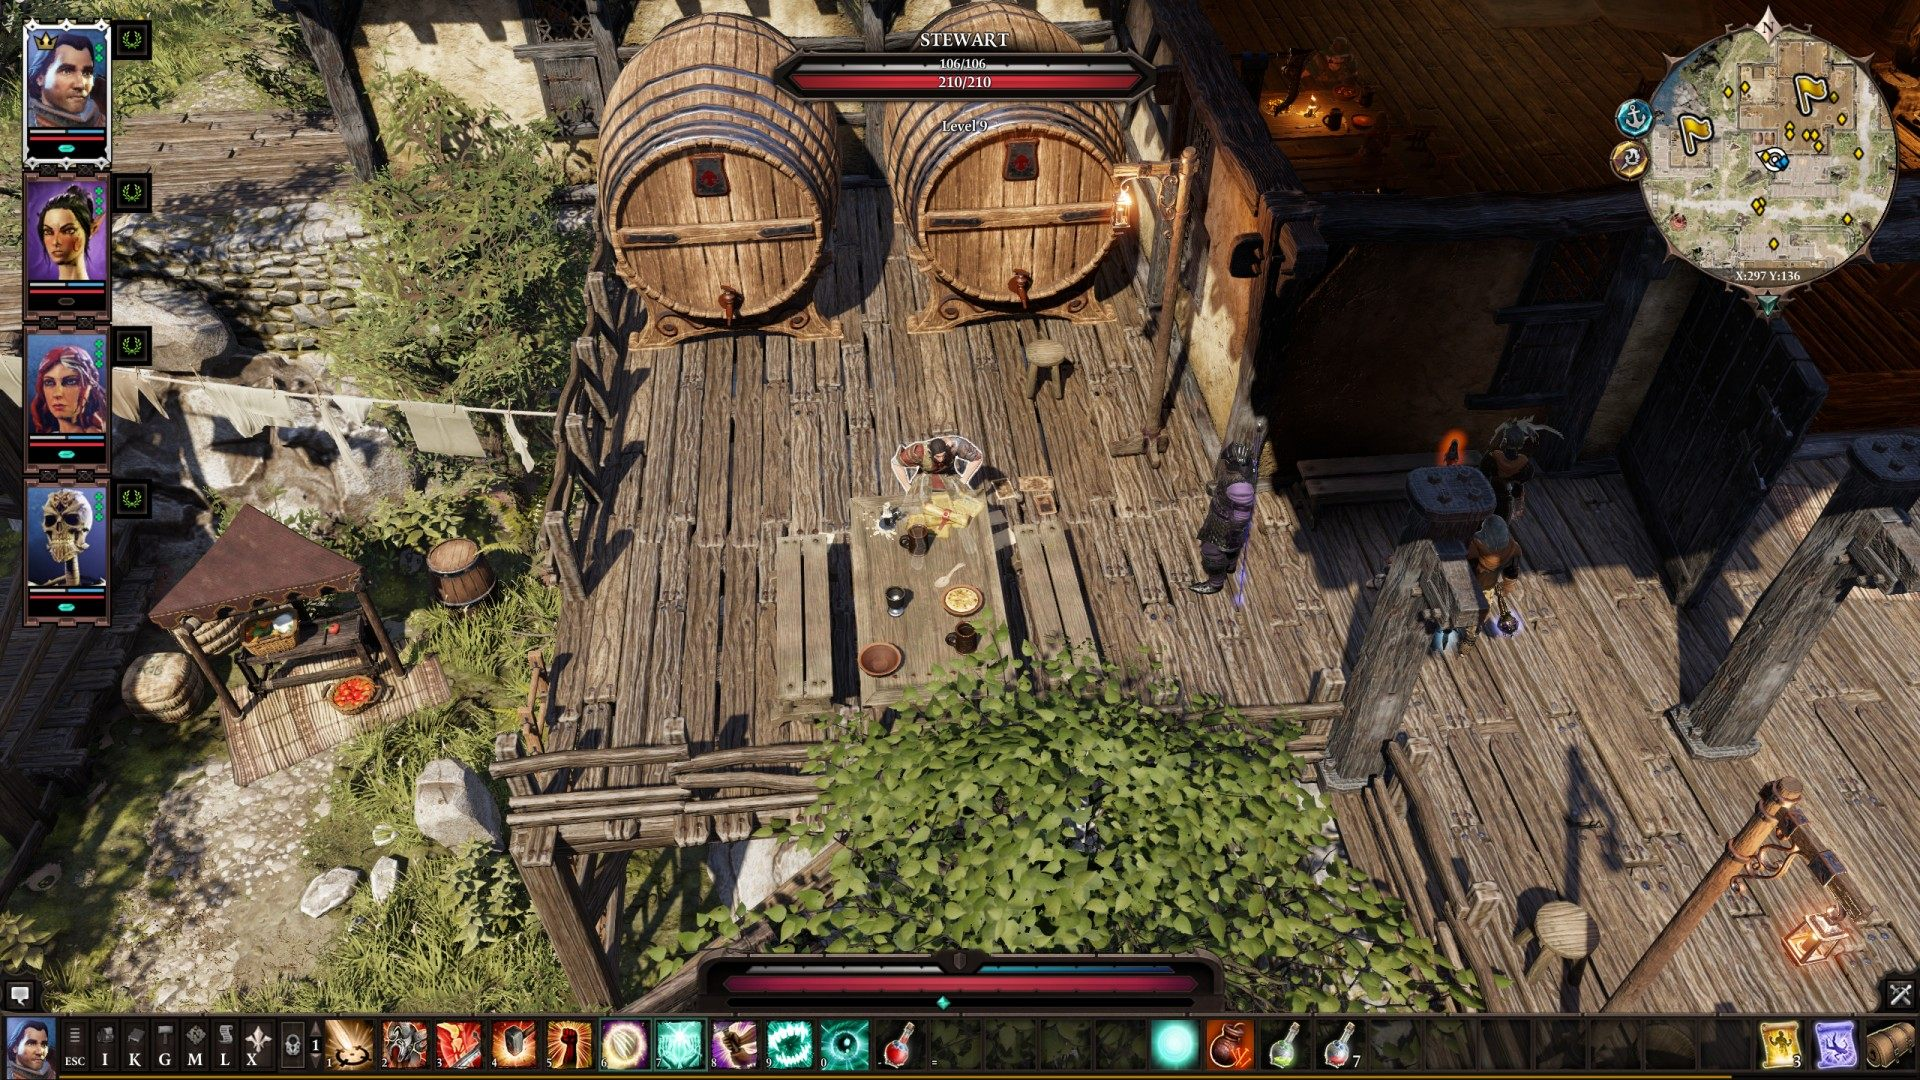 The Missing Magisters, Divinity: Original Sin 2 Quest